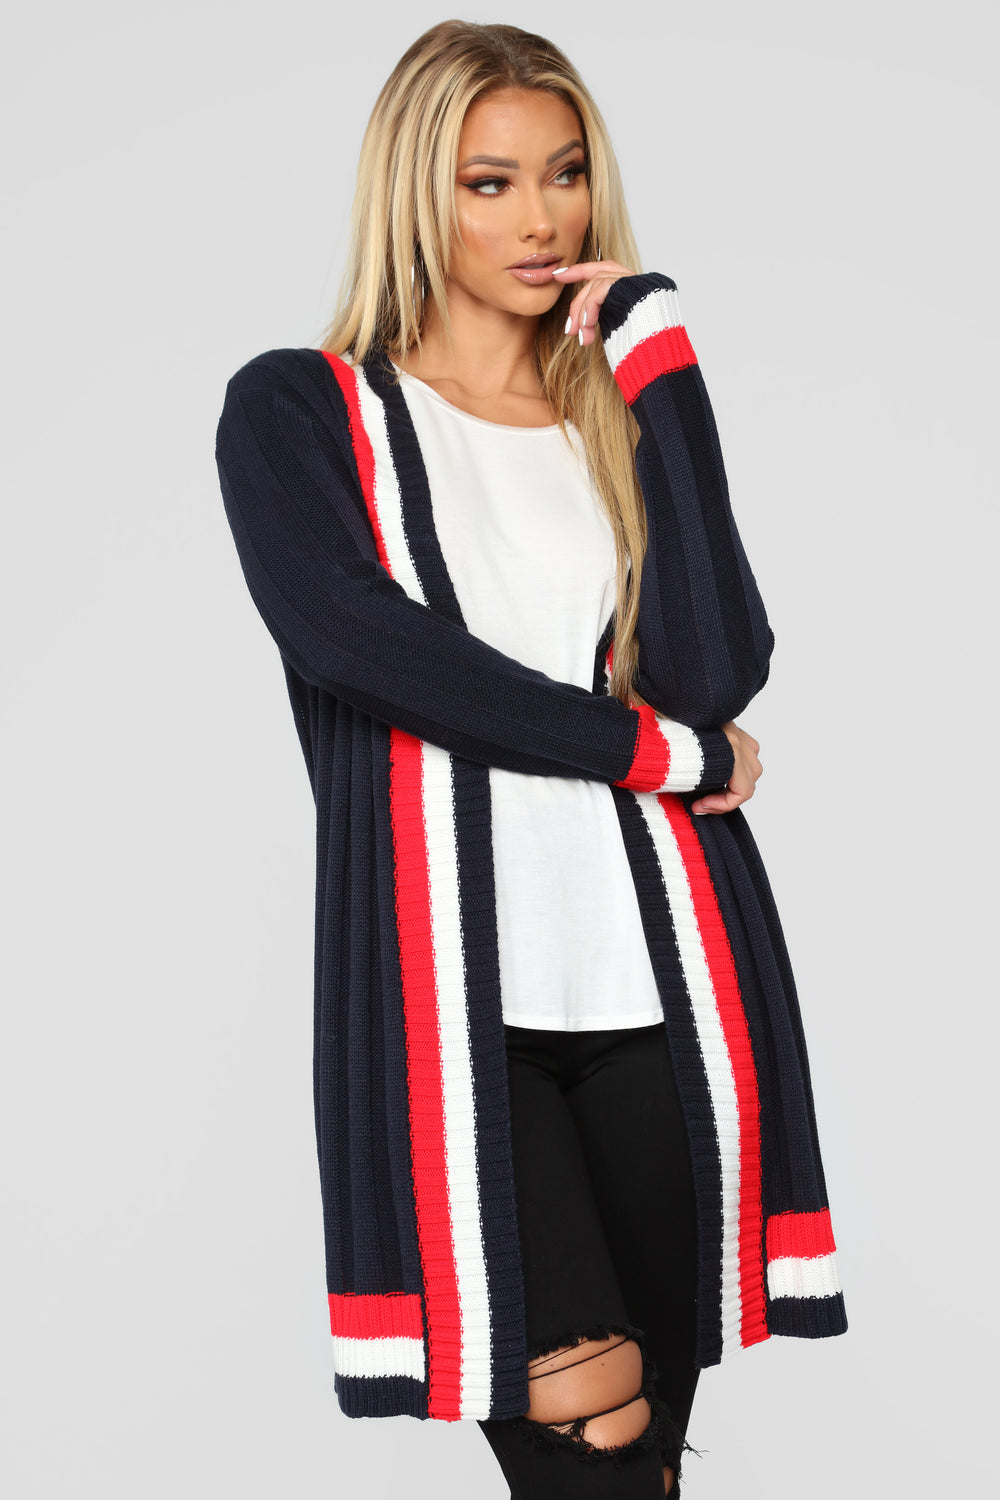 Call On Me Cardigan - Navy